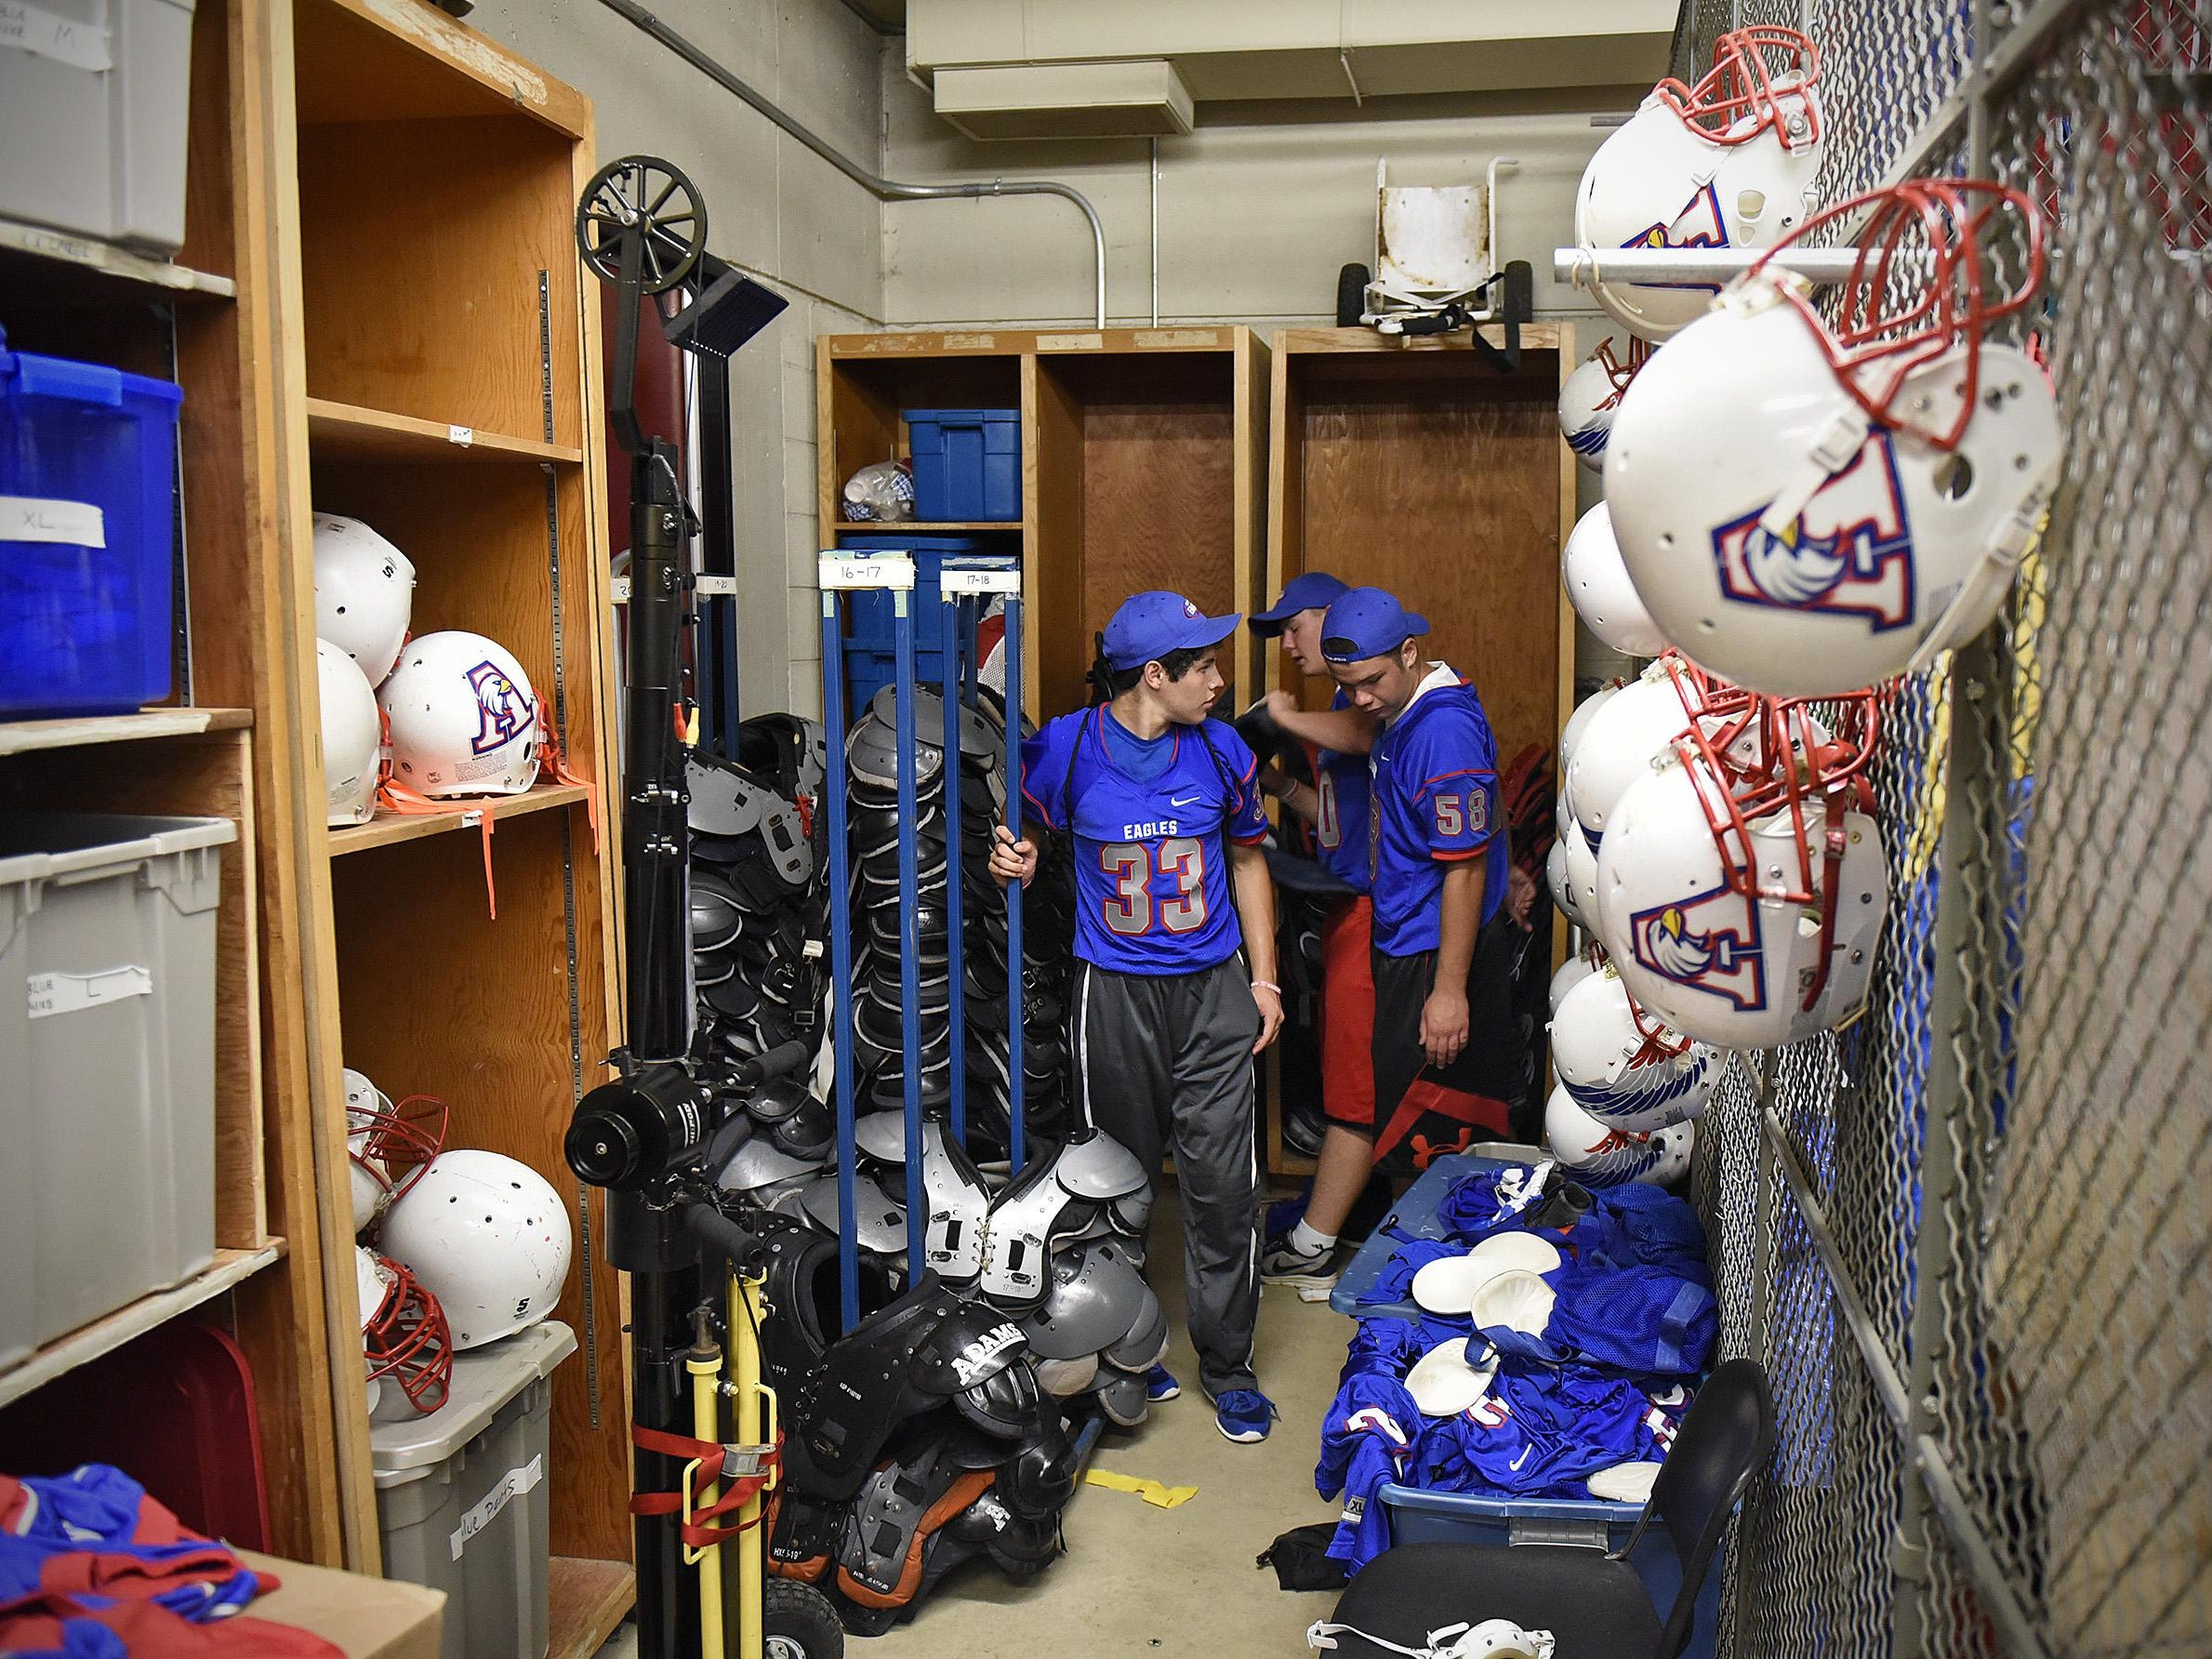 Apollo High School football players sort through equipment Friday on the last day of the school's youth camp. Football practice for all area high schools starts Monday.